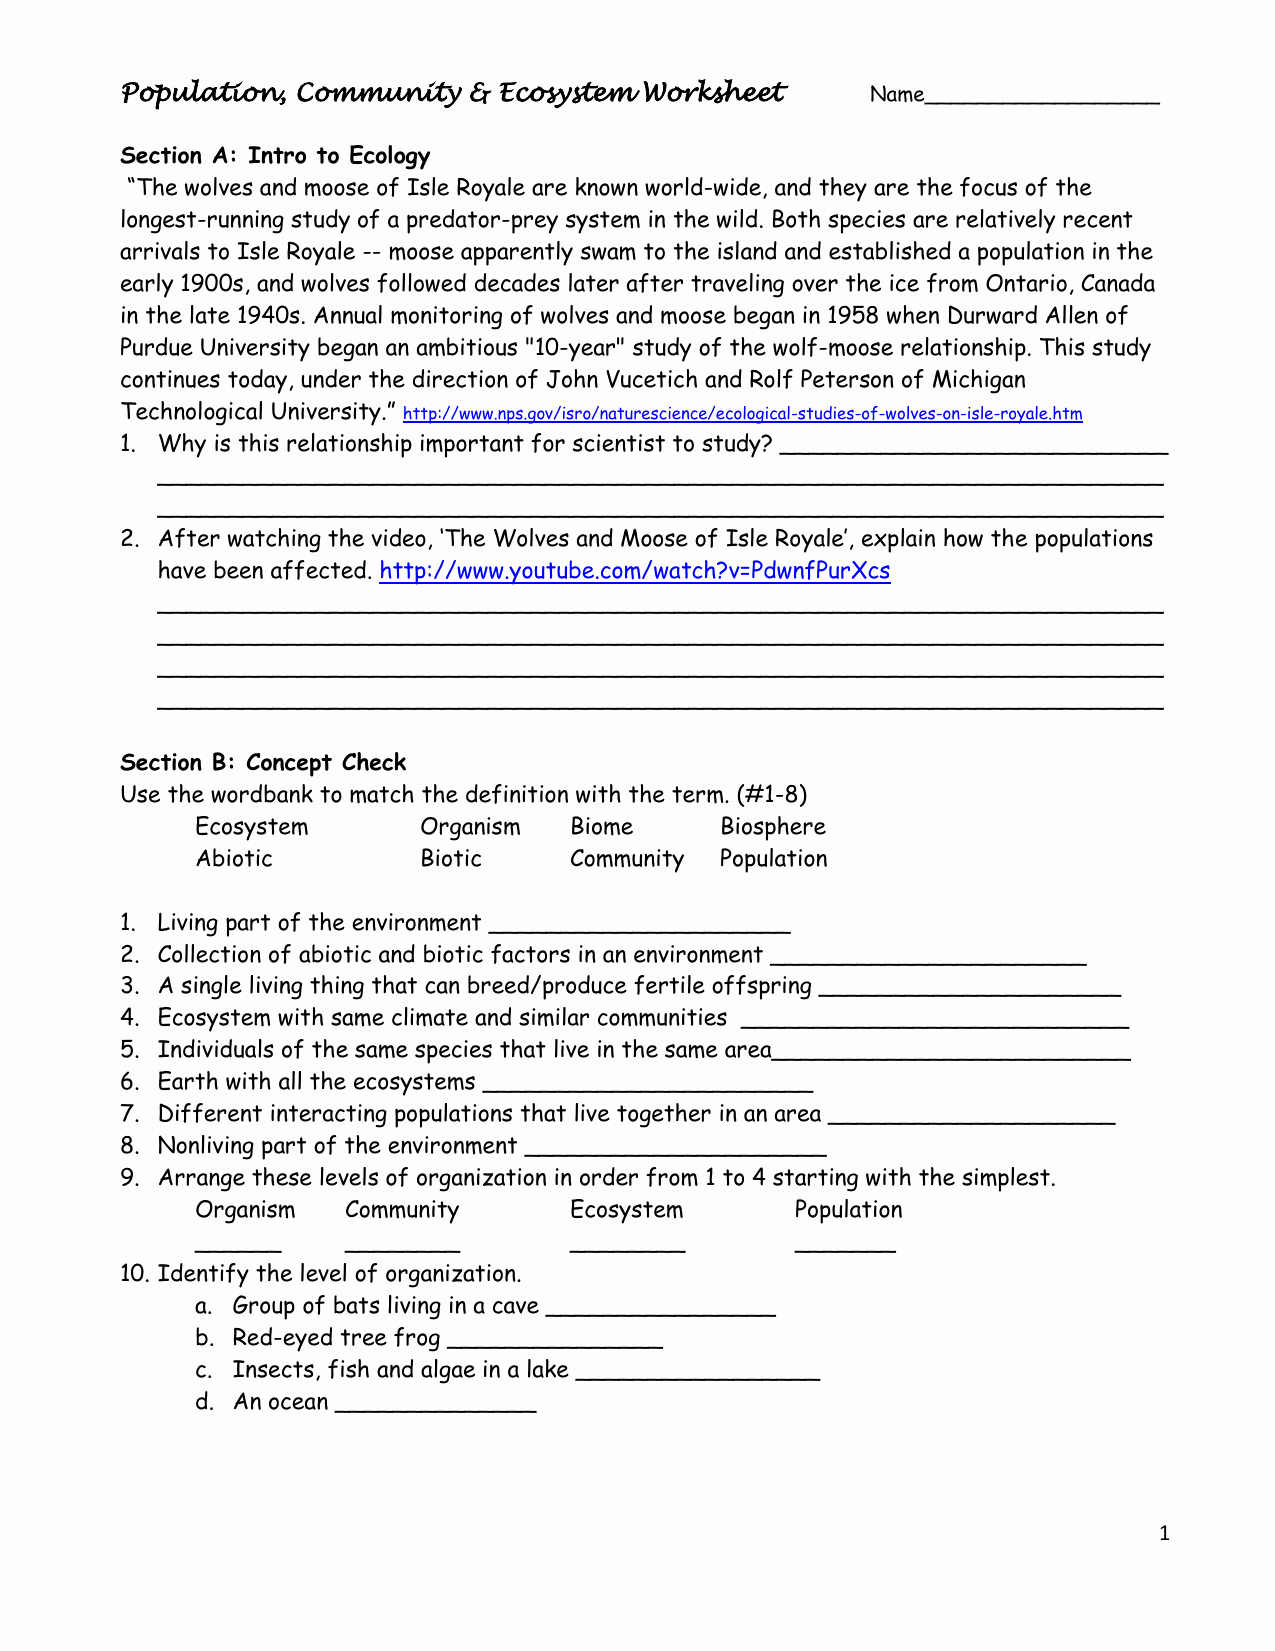 Energy Flow Worksheet Answers Best Of Energy Flow In An Ecosystem Worksheet Answers Biozone